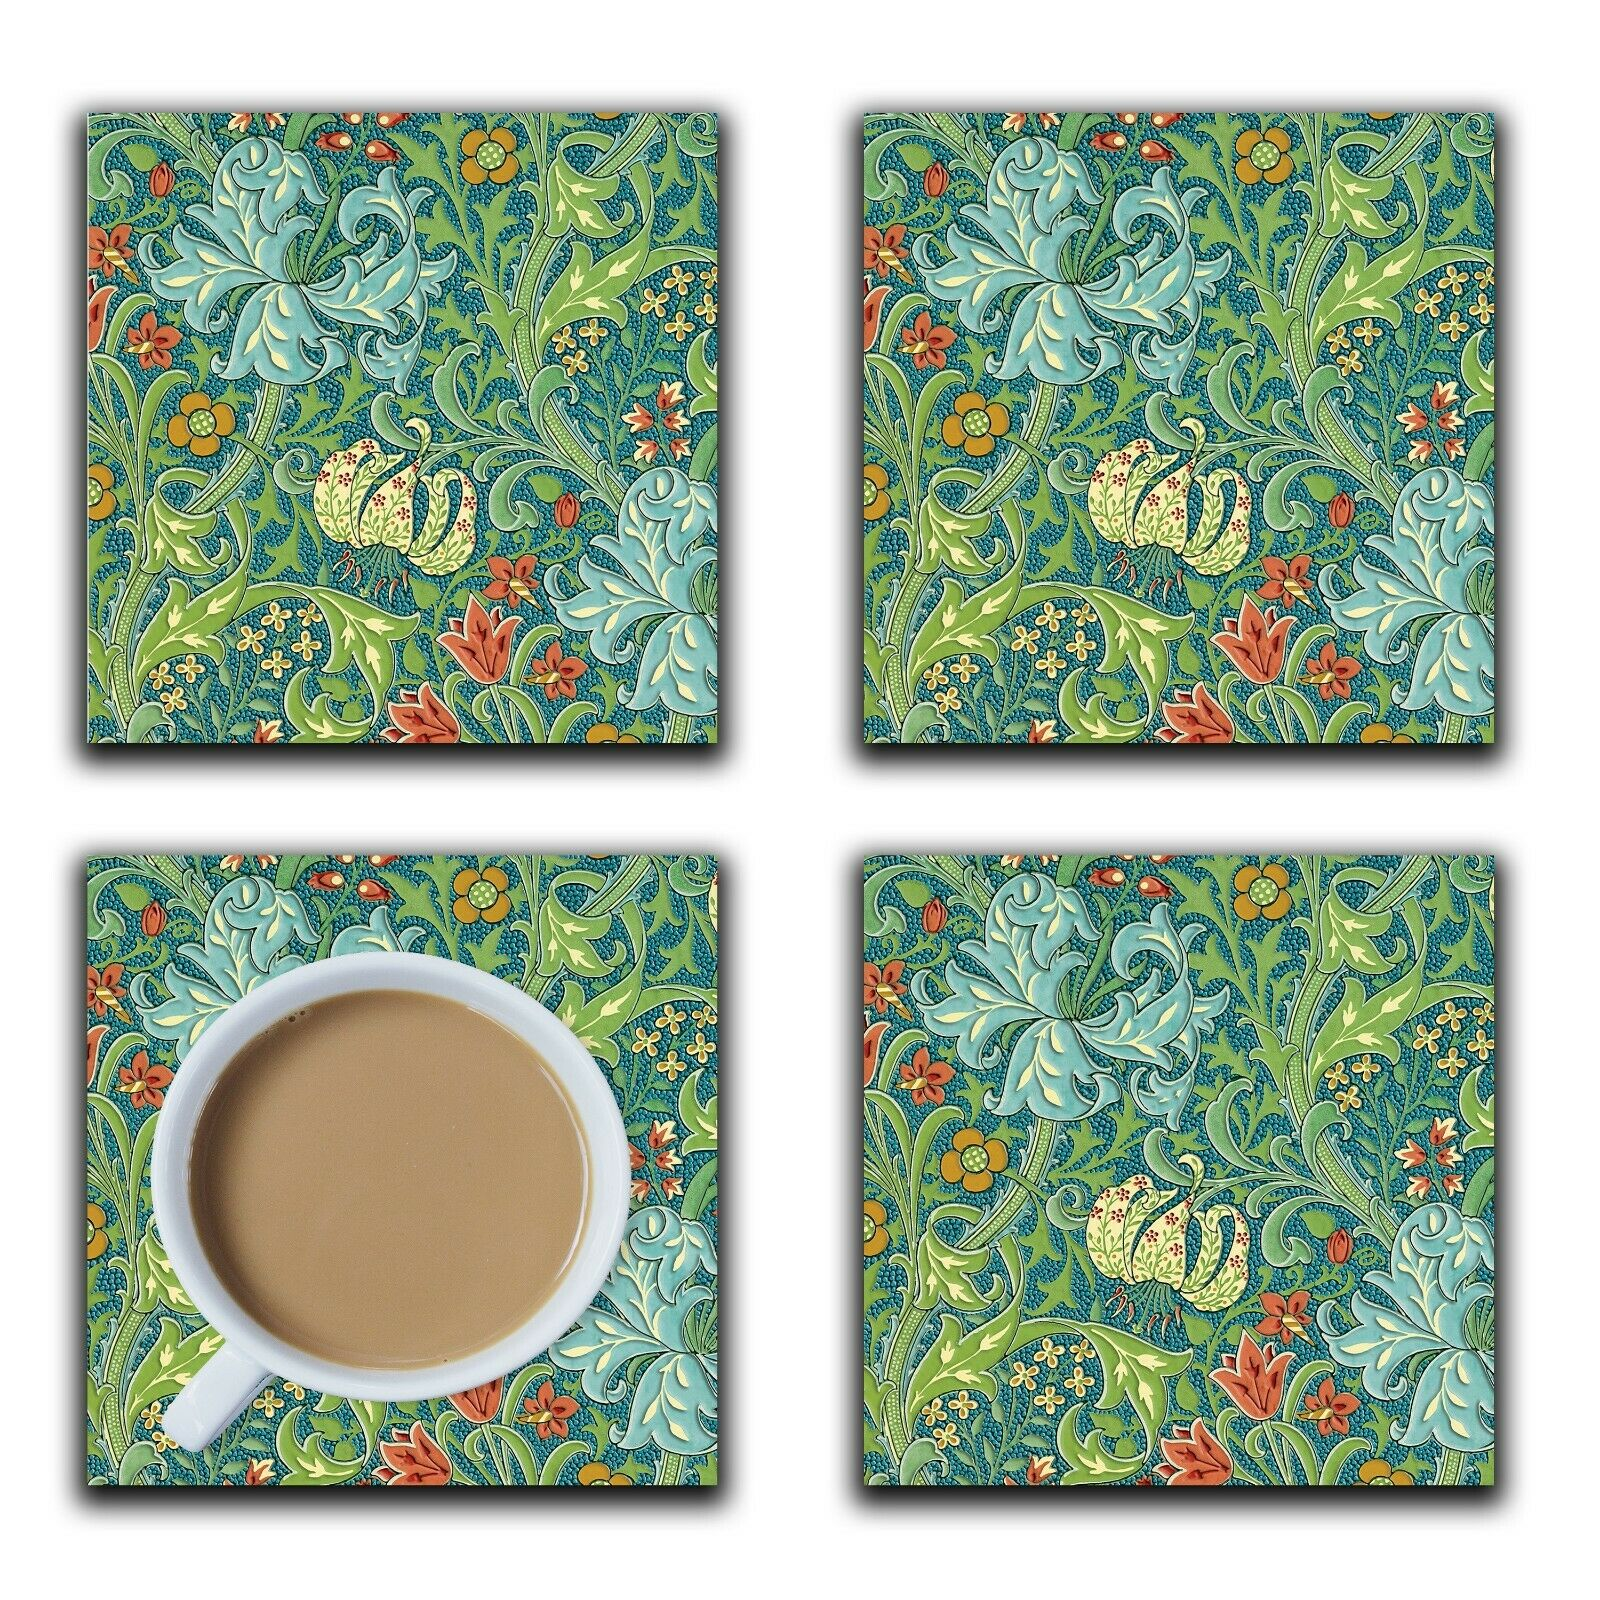 Embossi Printed 1899 English Lily, choose wood or ceramic tile, set of 4